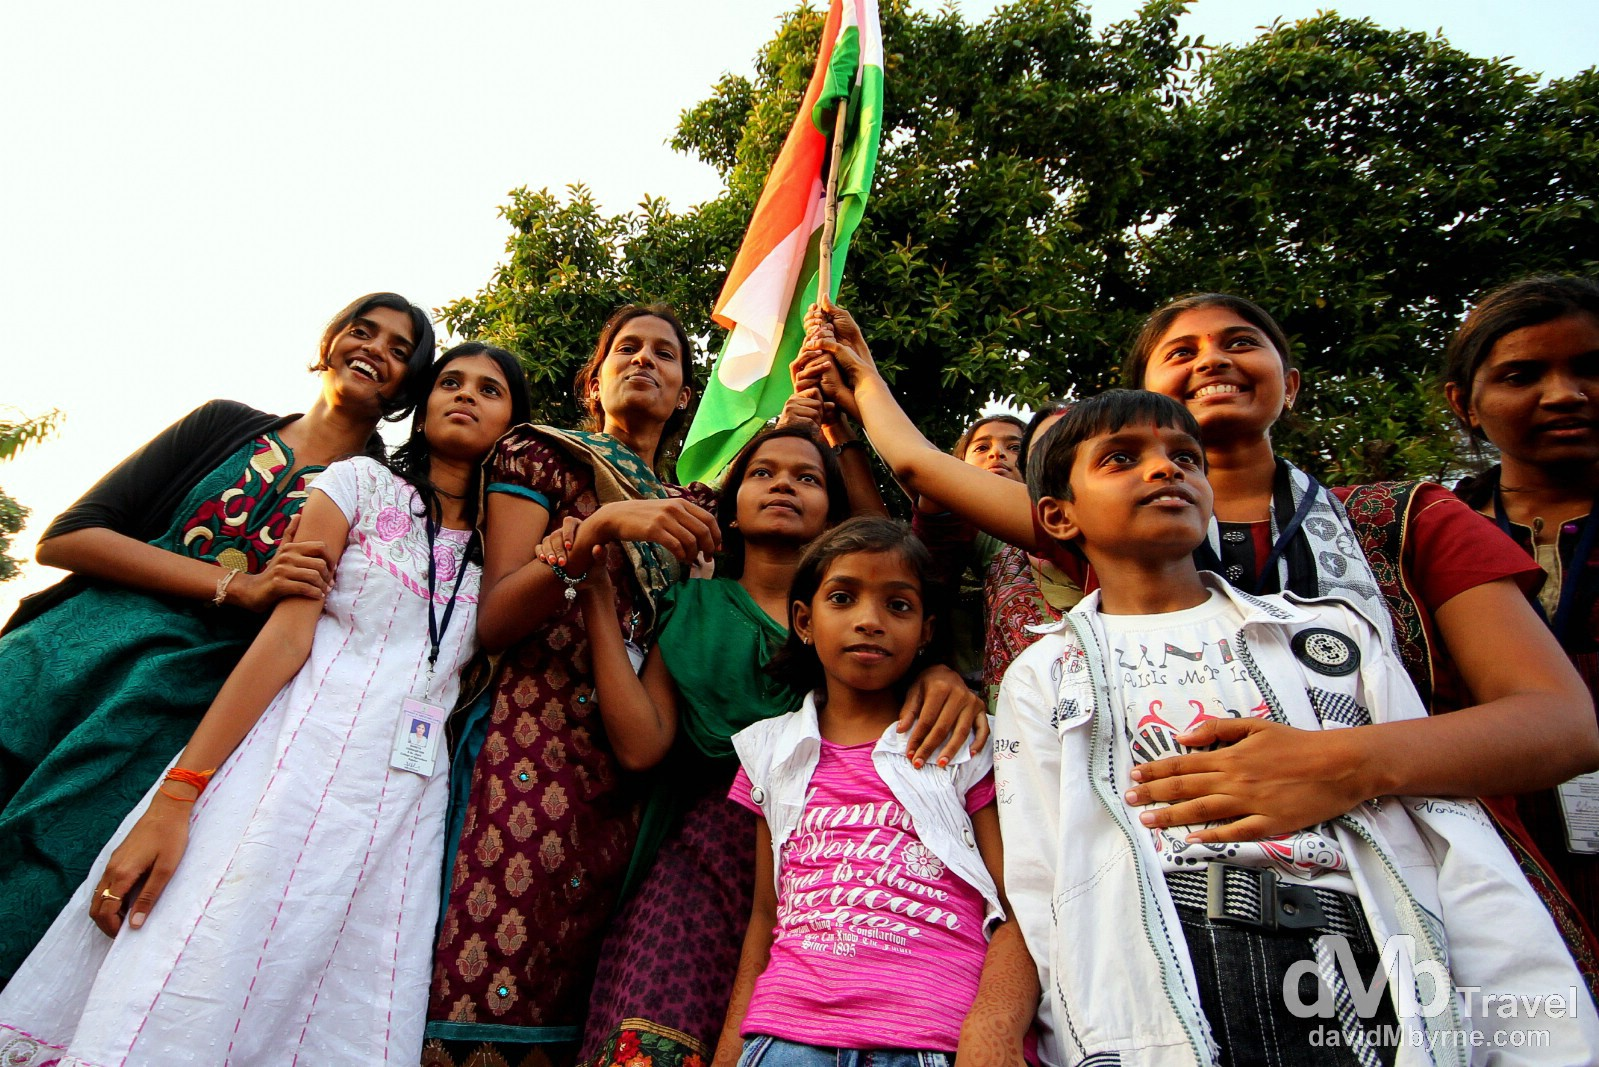 Patriotic Indians on the Indian side of the India-Pakistan border enjoying the atmosphere ahead of the sunset border closing ceremony. October 9th 2012.